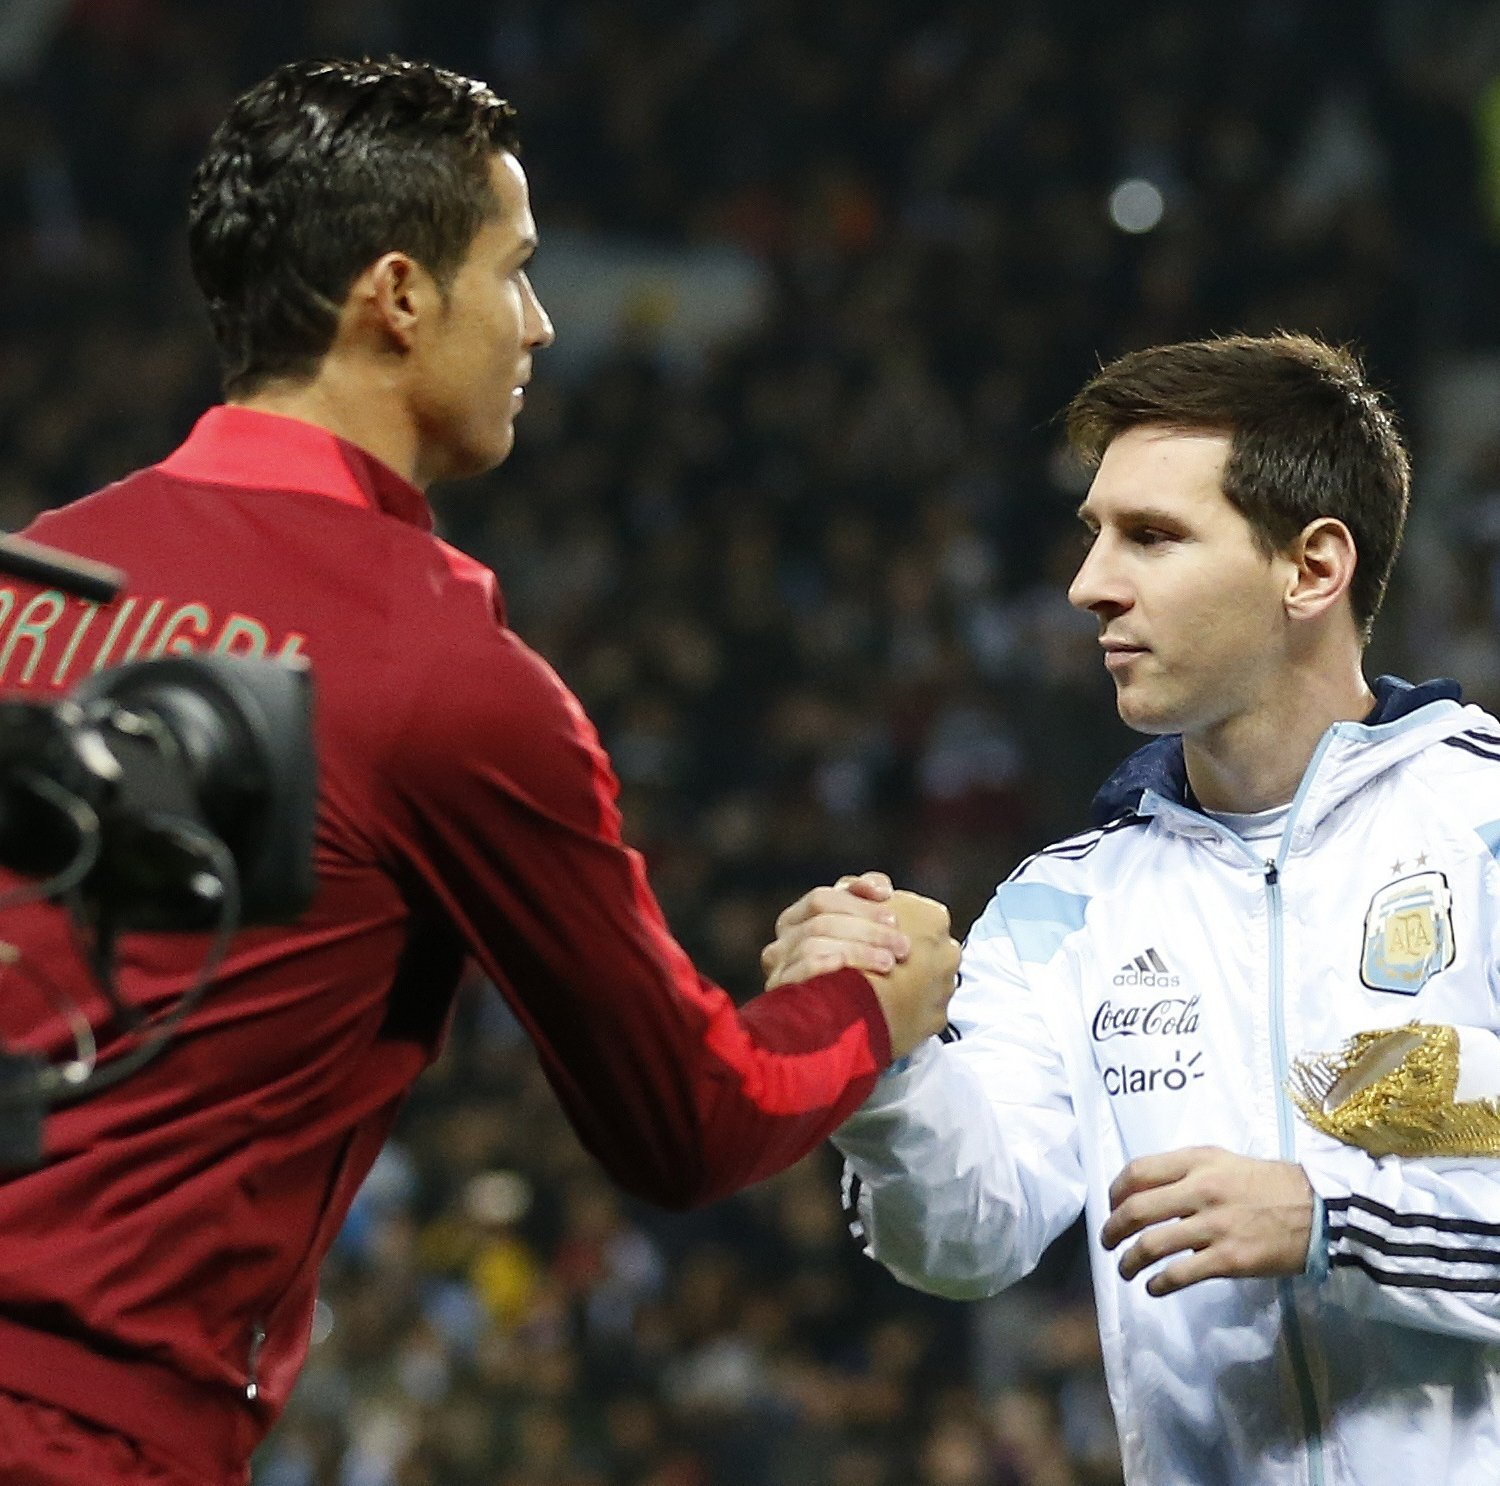 Campeonato Brasileiro Key Missing Players: Cristiano Ronaldo Offers Lionel Messi Support After Star's